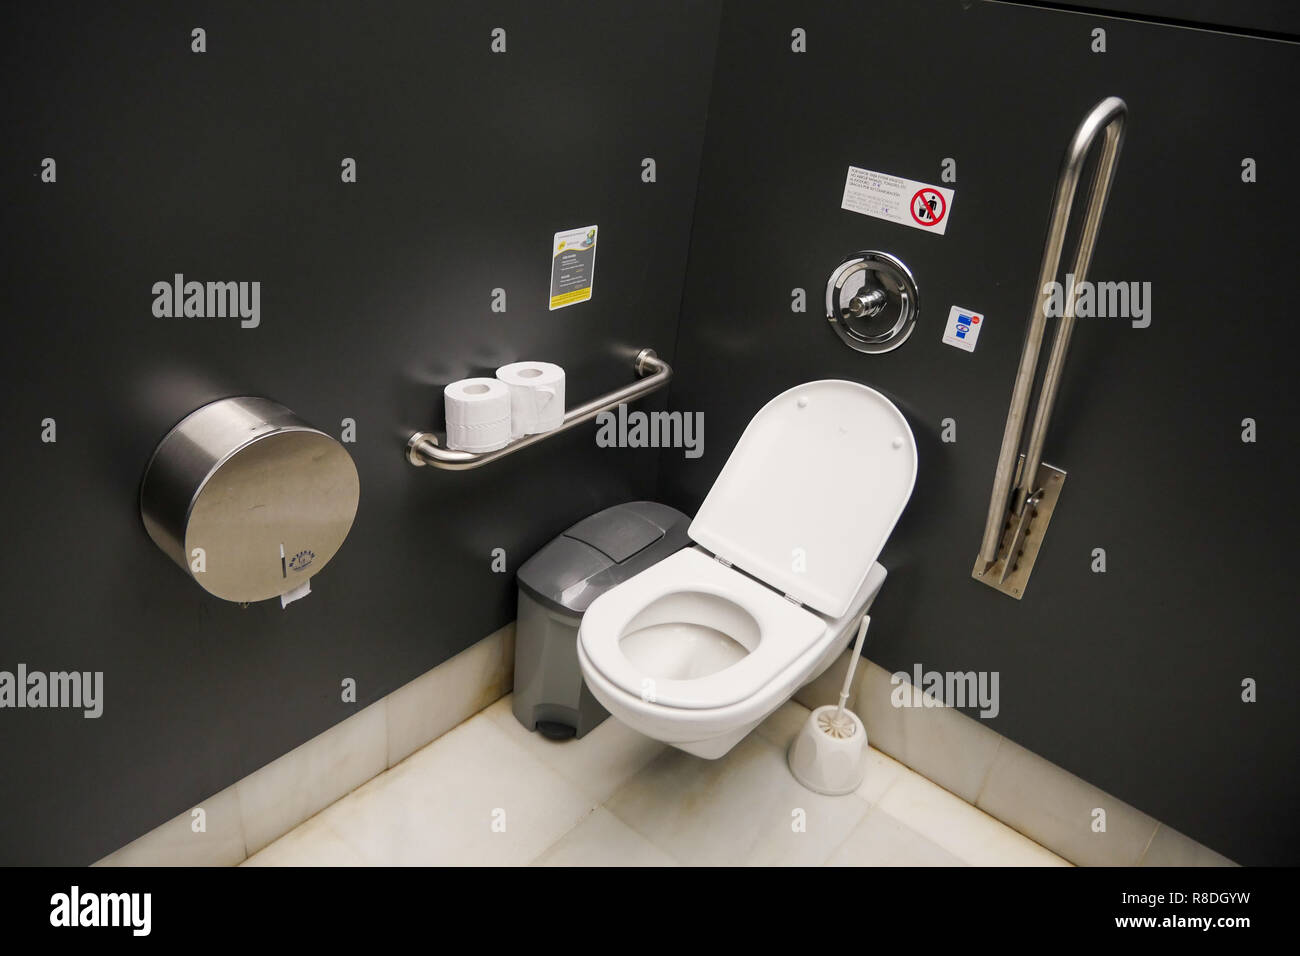 Toilets for disabled persons at Queen Sofia Museum - Museo Nacional Centro de Arte Reina Sofía, Madrid, Spain Stock Photo